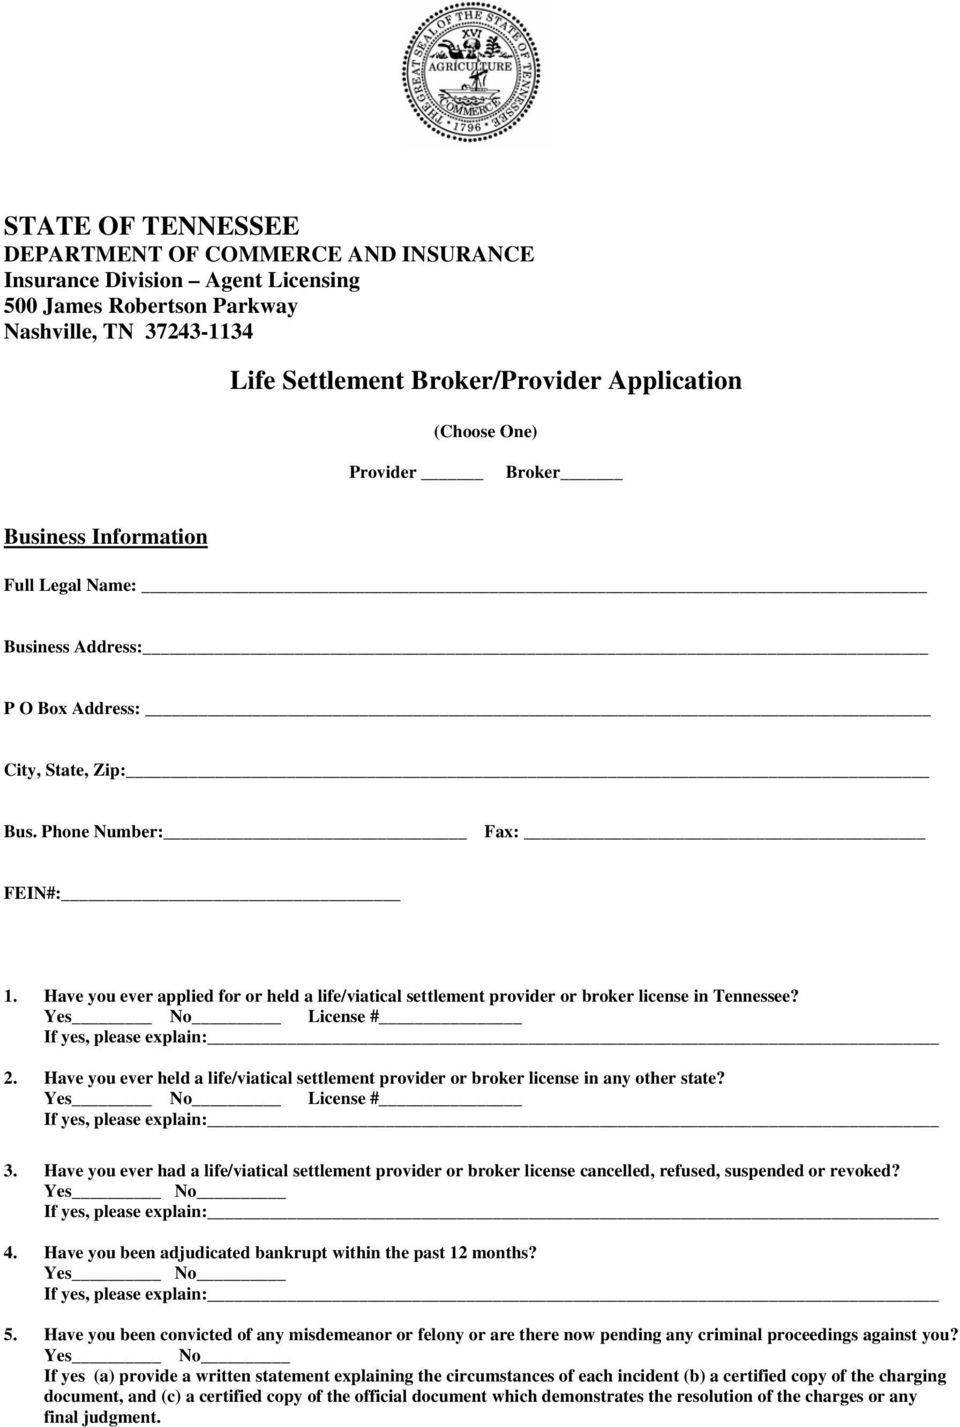 Have you ever applied for or held a life/viatical settlement provider or broker license in Tennessee? Yes No License # If yes, please explain:_ 2.